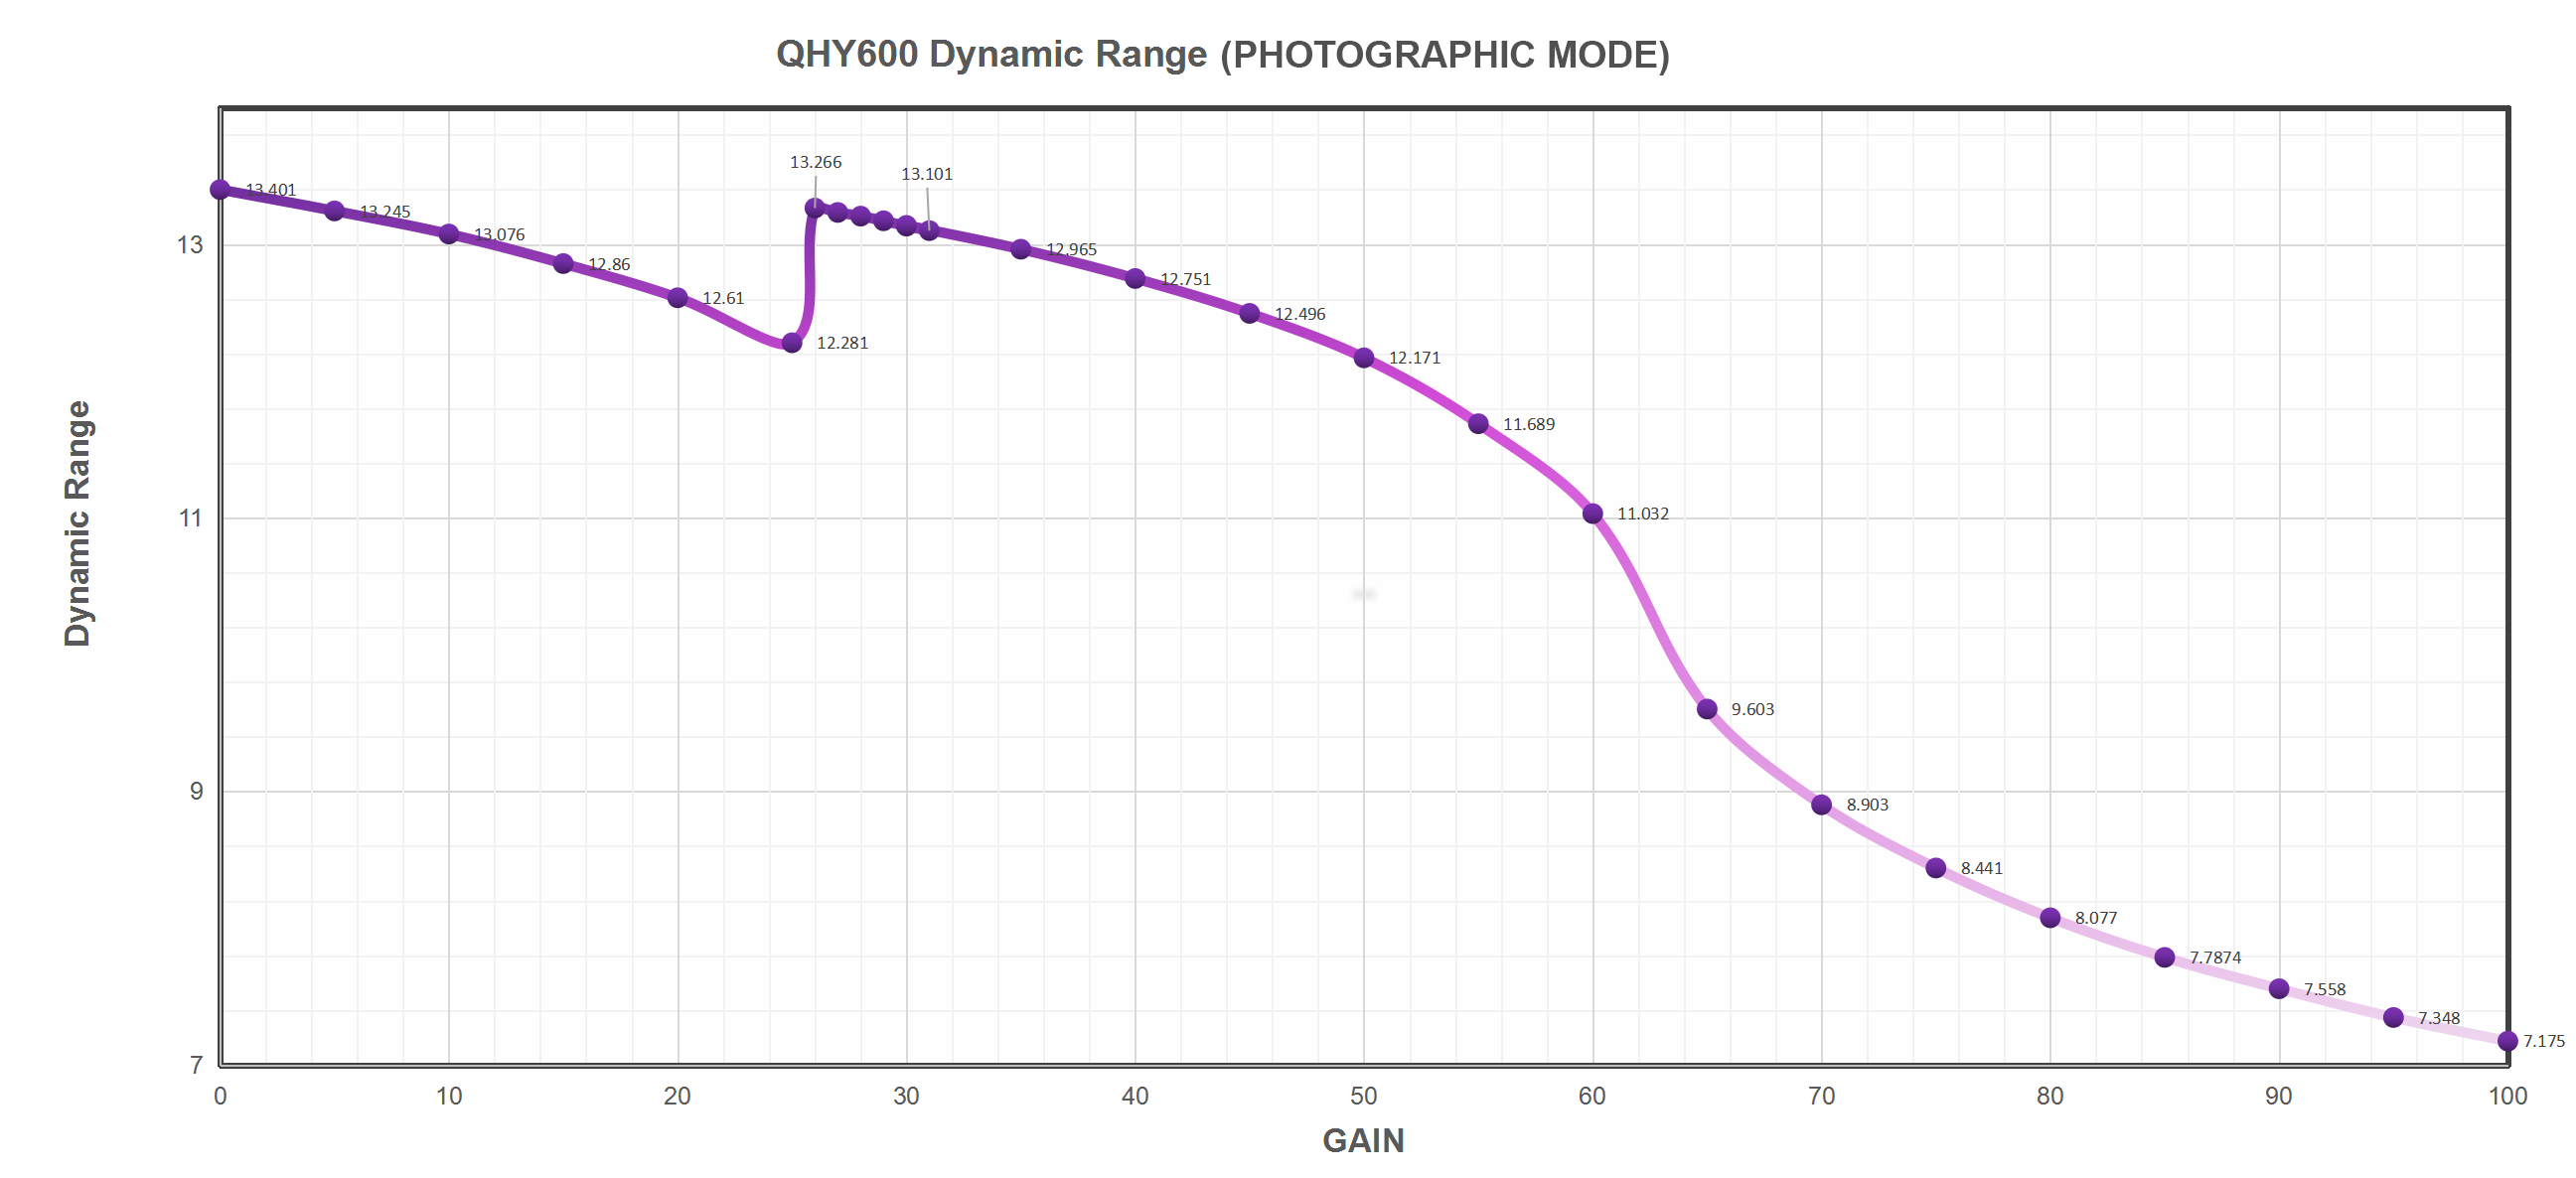 QHY600 Dynamic Range (Photographic Mode)